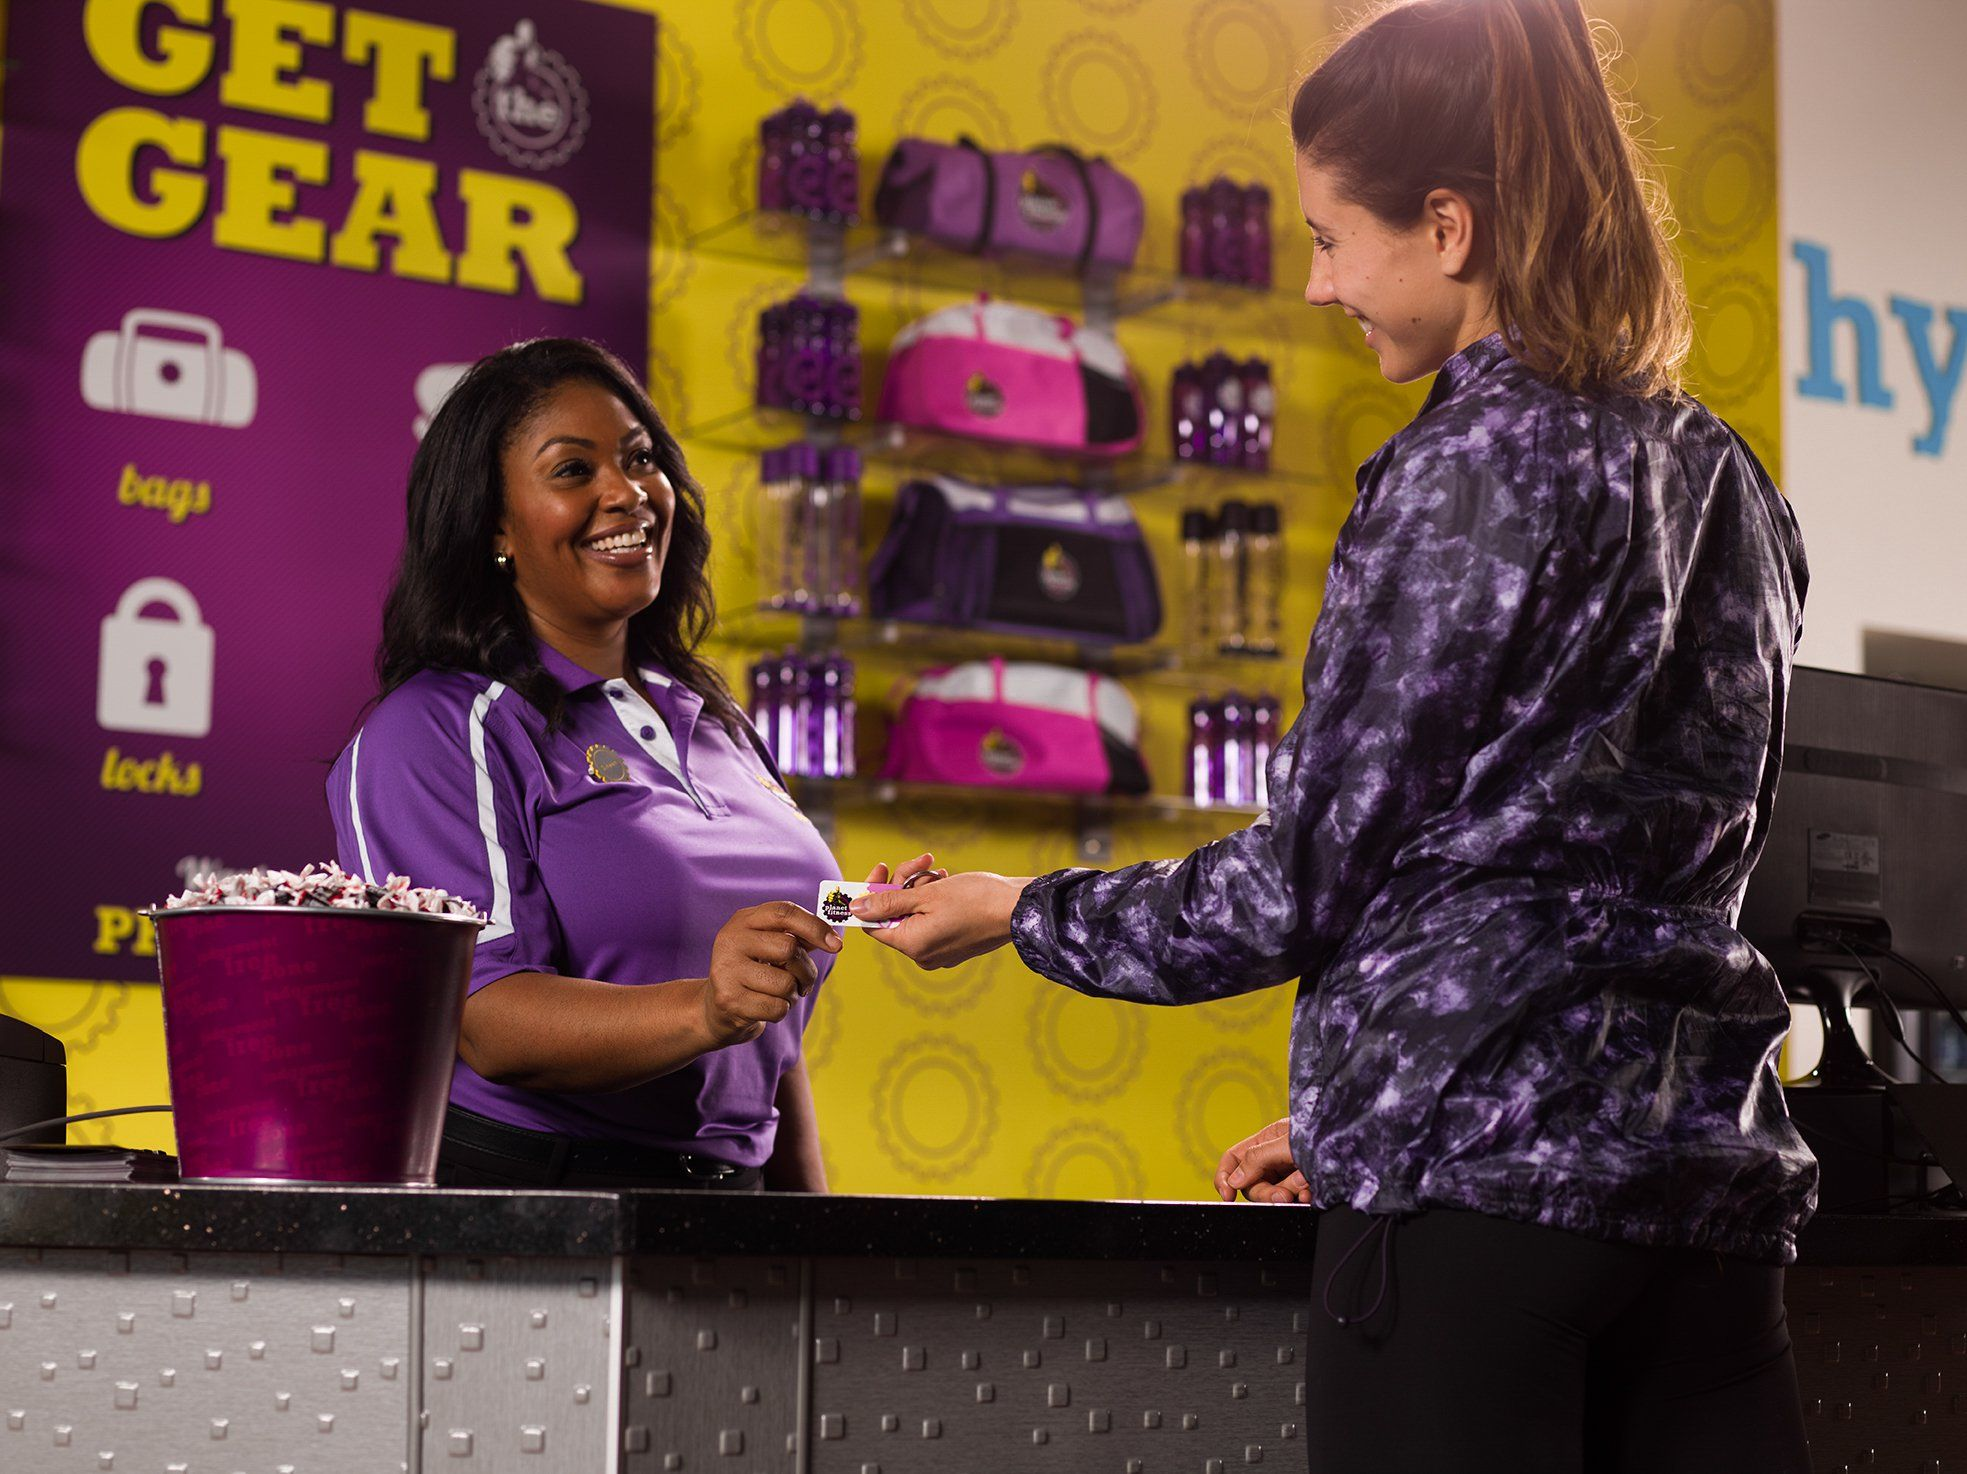 Woman Checking In At The Front Desk Of A Planet Fitness Gym Planet Fitness Workout Planet Fitness Gym Fitness Tips